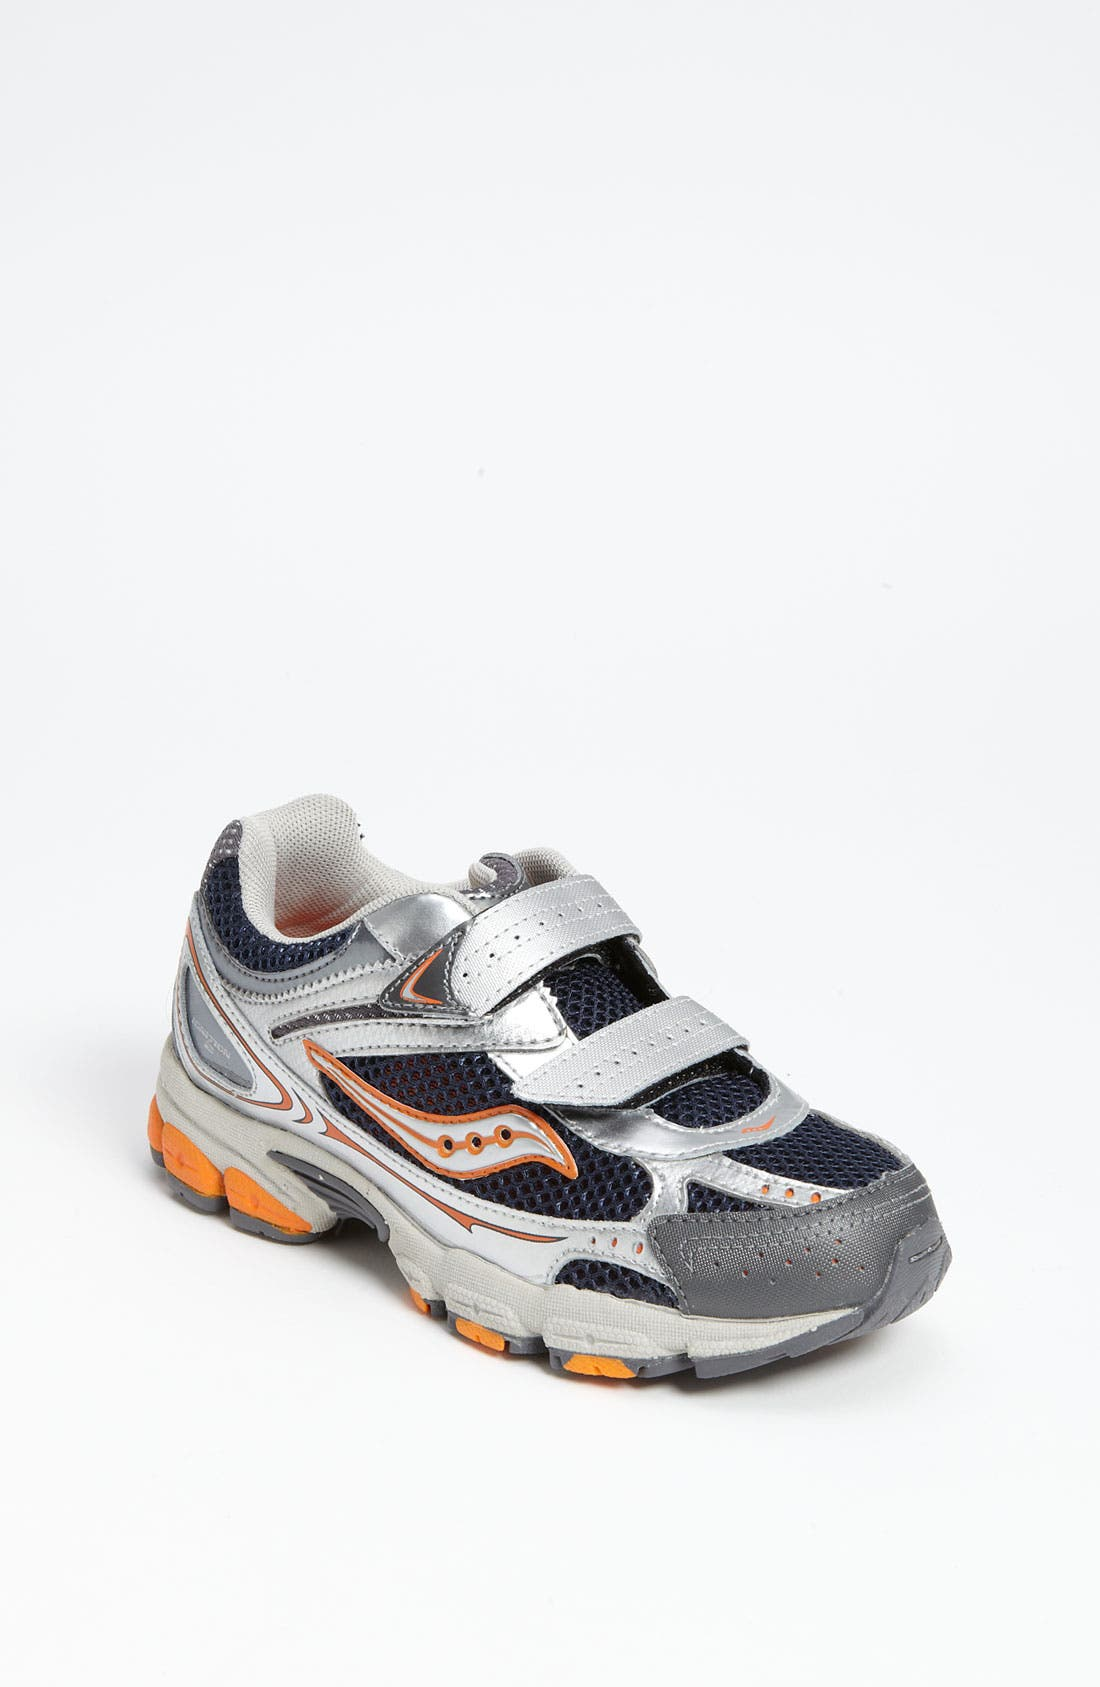 Alternate Image 1 Selected - Saucony 'Grid Profile' Sneaker (Toddler & Little Kid)